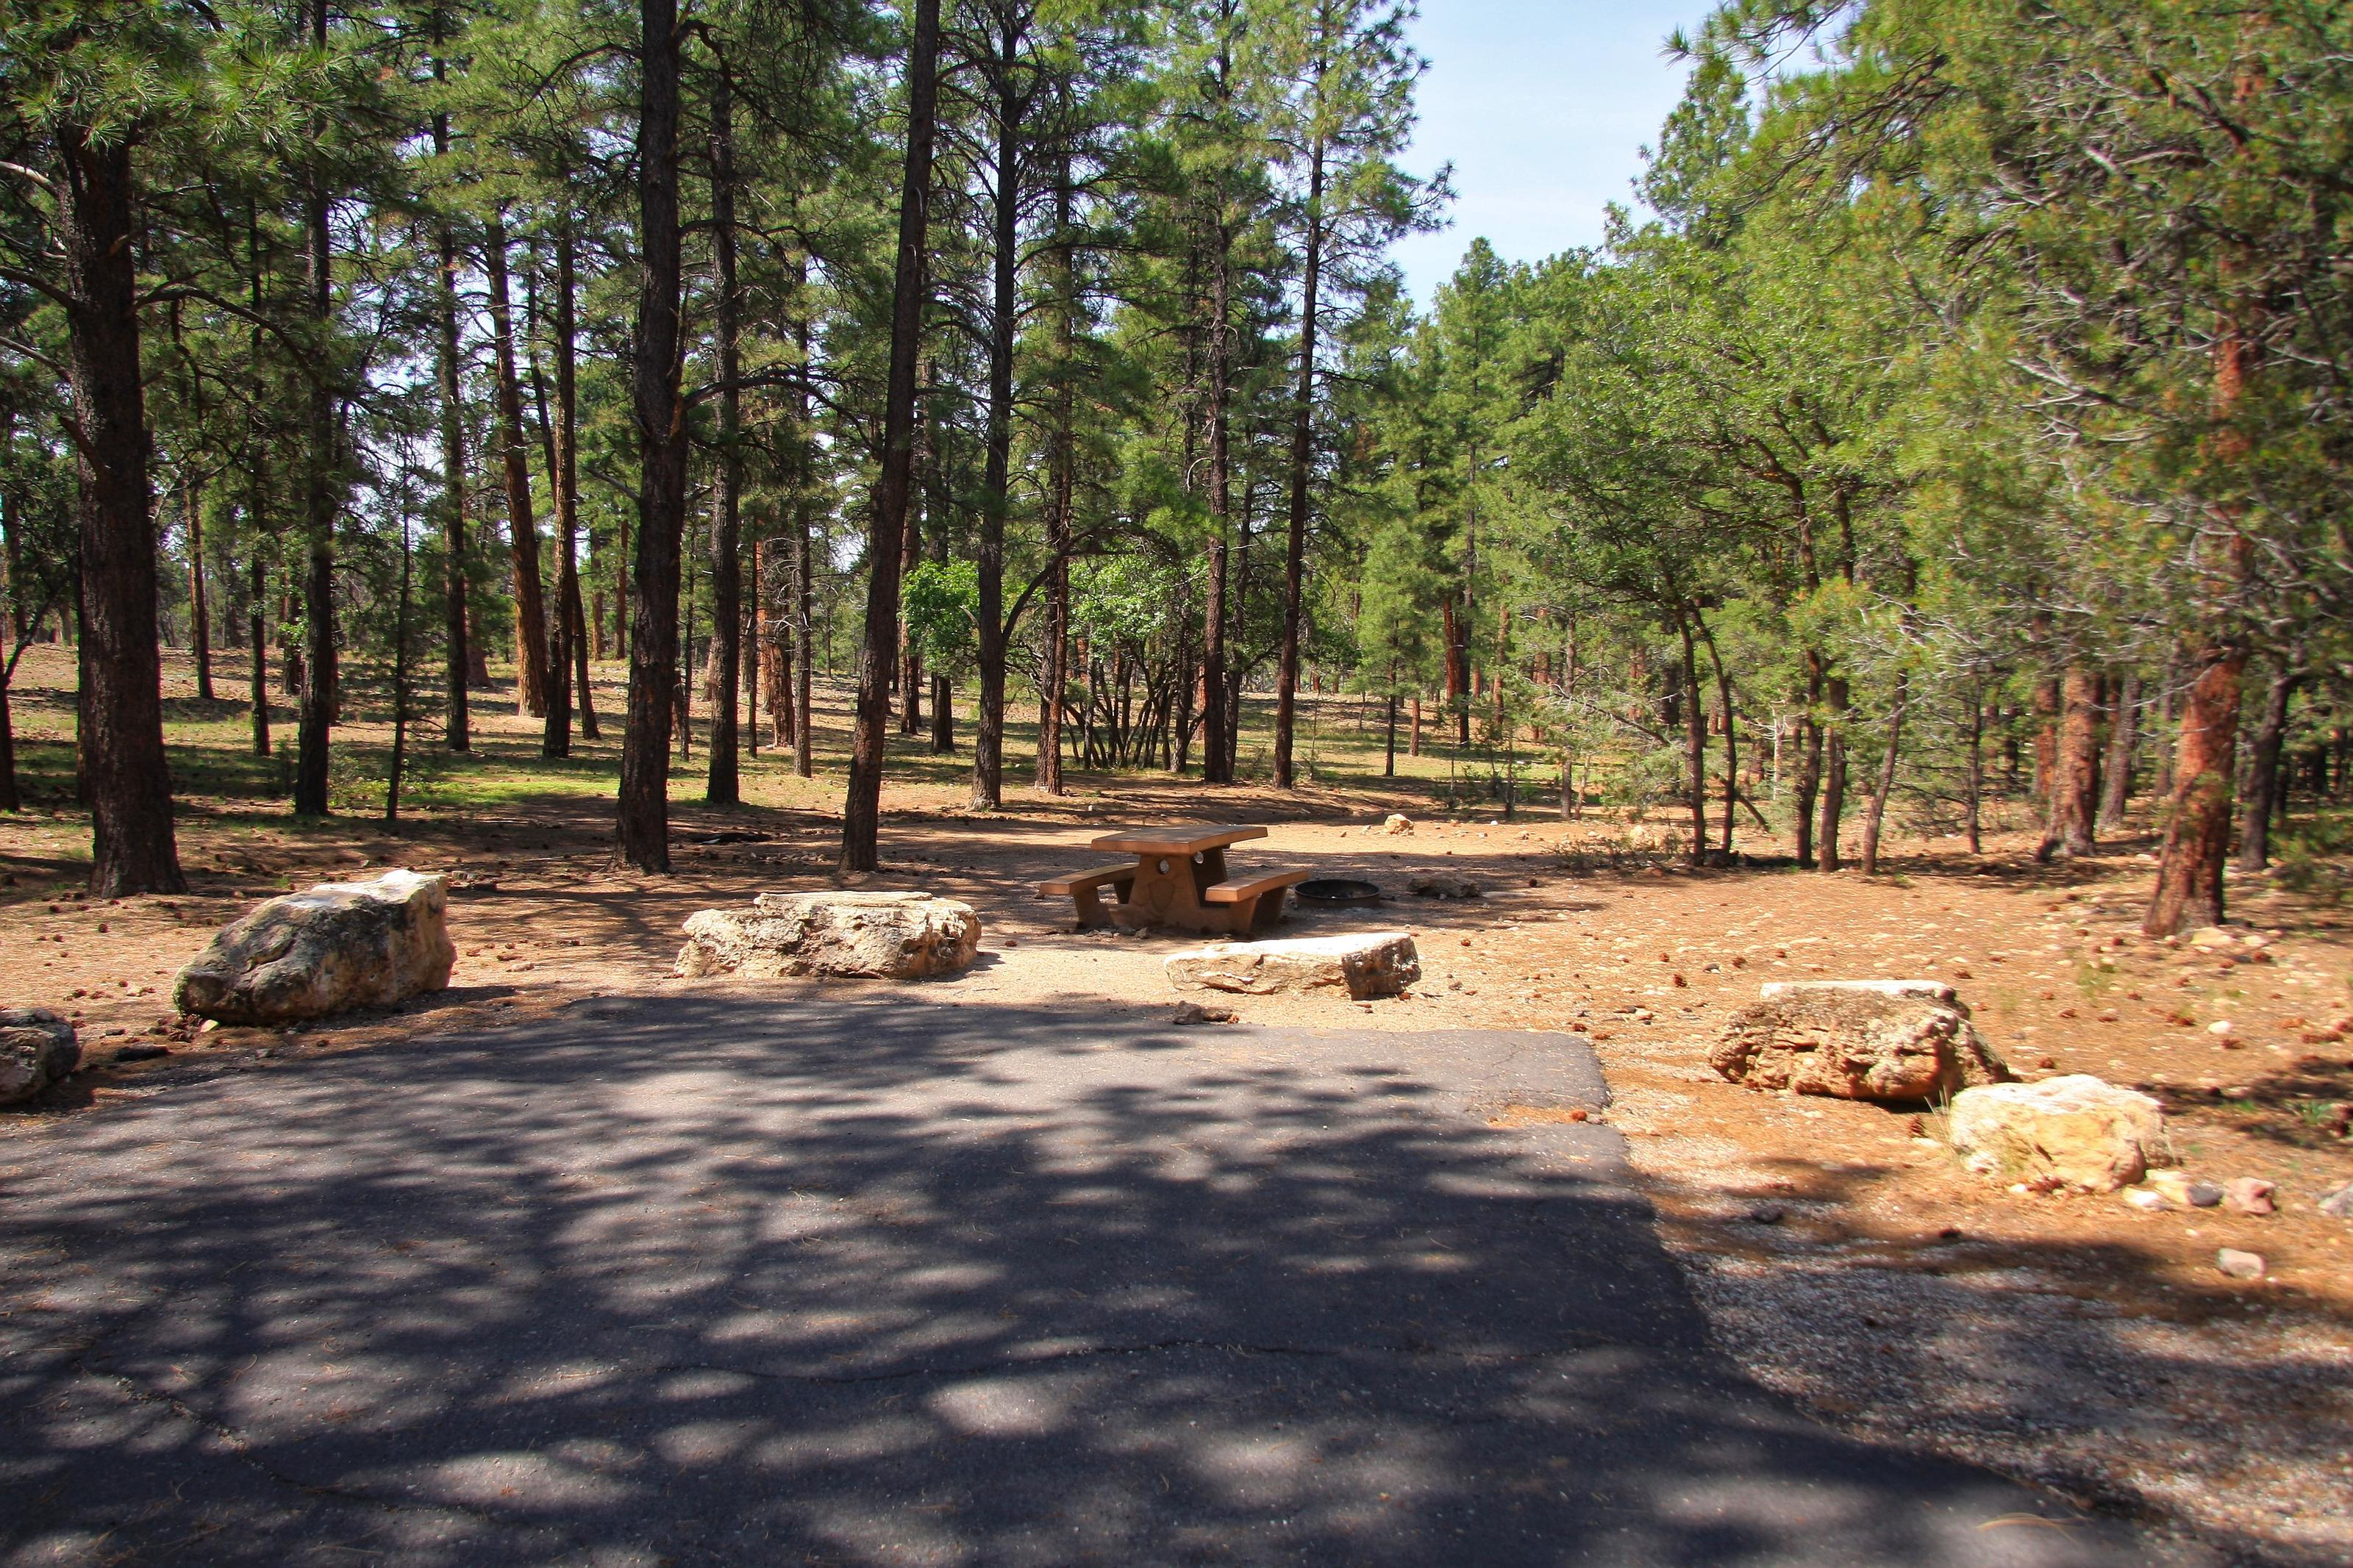 Picnic table, fire pit, and parking spot, Mather CampgroundPicnic table, fire pit, and parking spot for Juniper Loop 145, Mather Campground